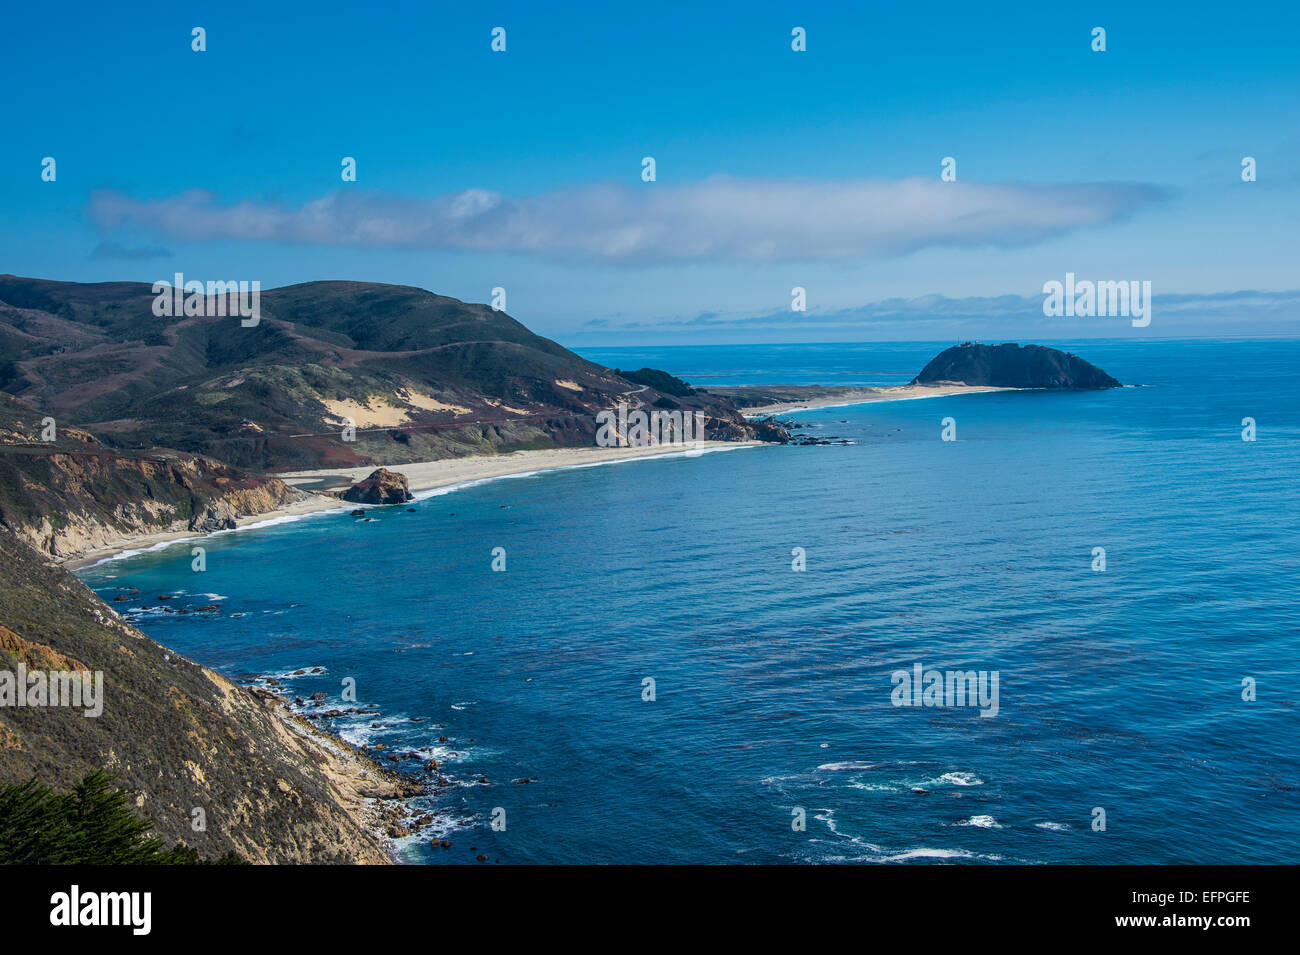 Sandy beaches near Point Sur State park, Big Sur, California, USA - Stock Image